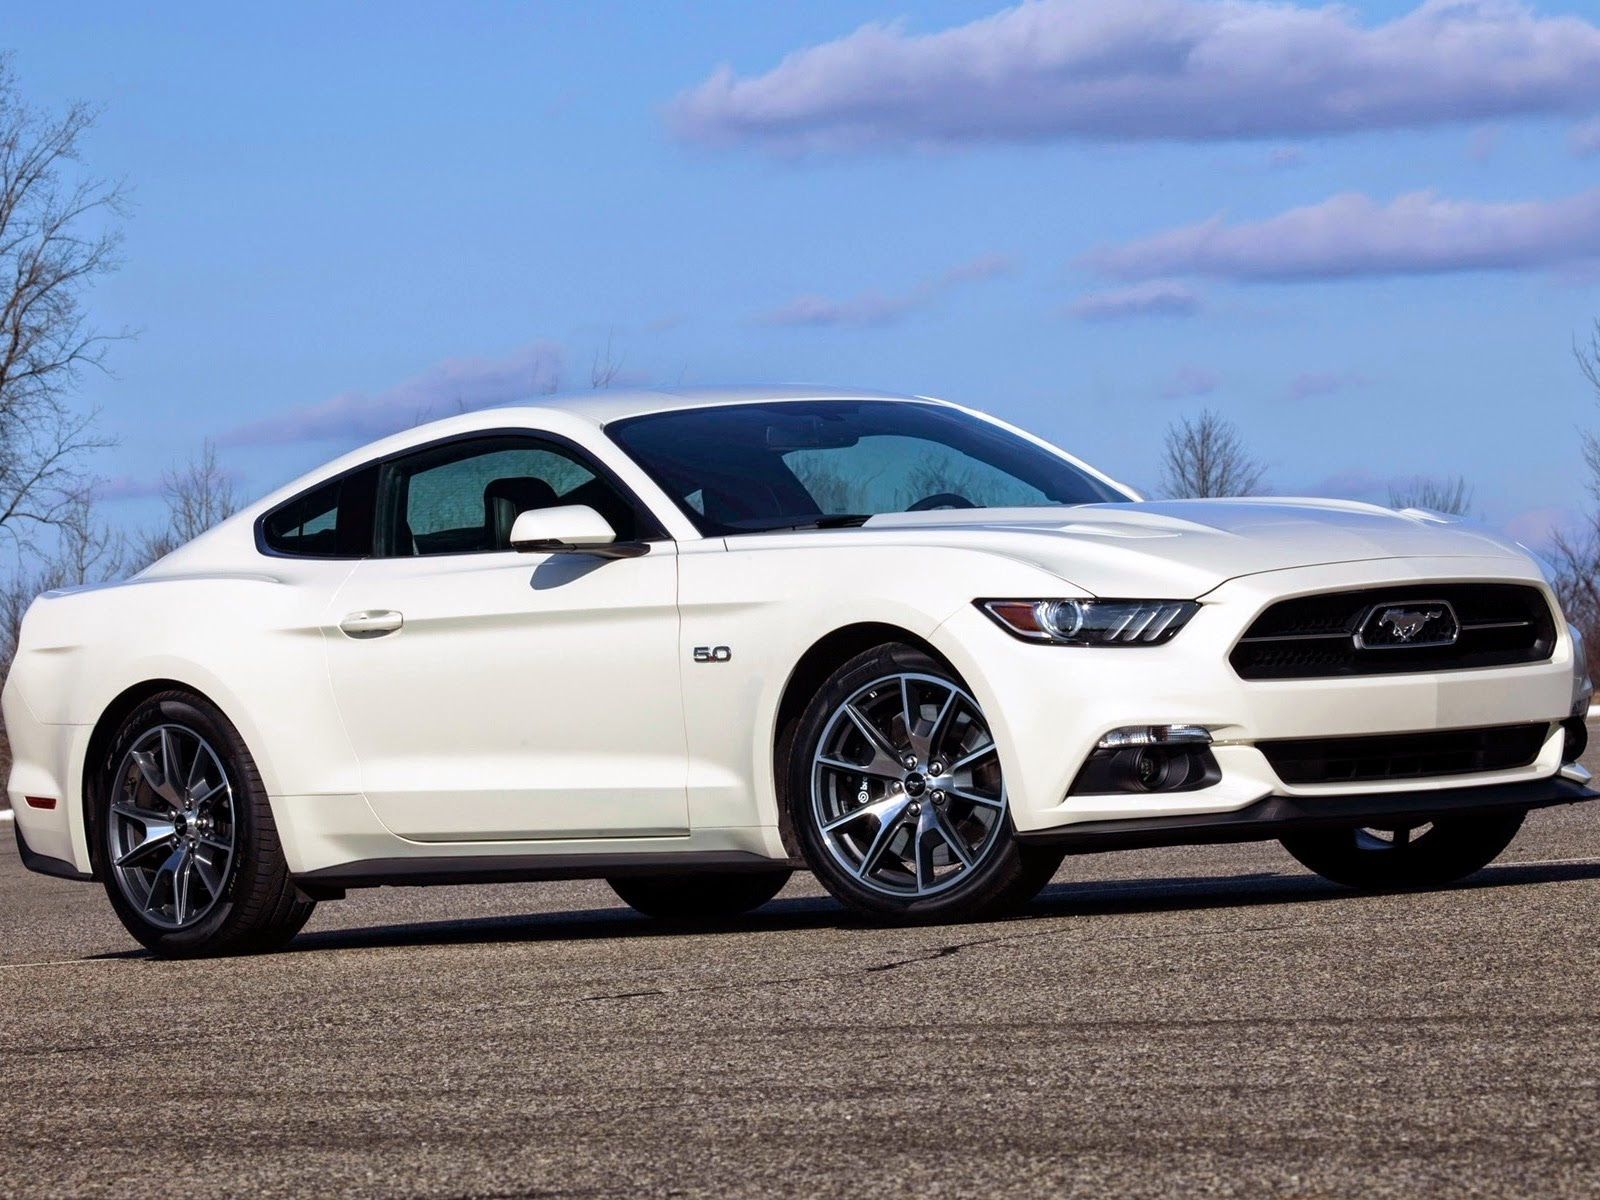 2015 ford mustang gt limited edition series. Black Bedroom Furniture Sets. Home Design Ideas